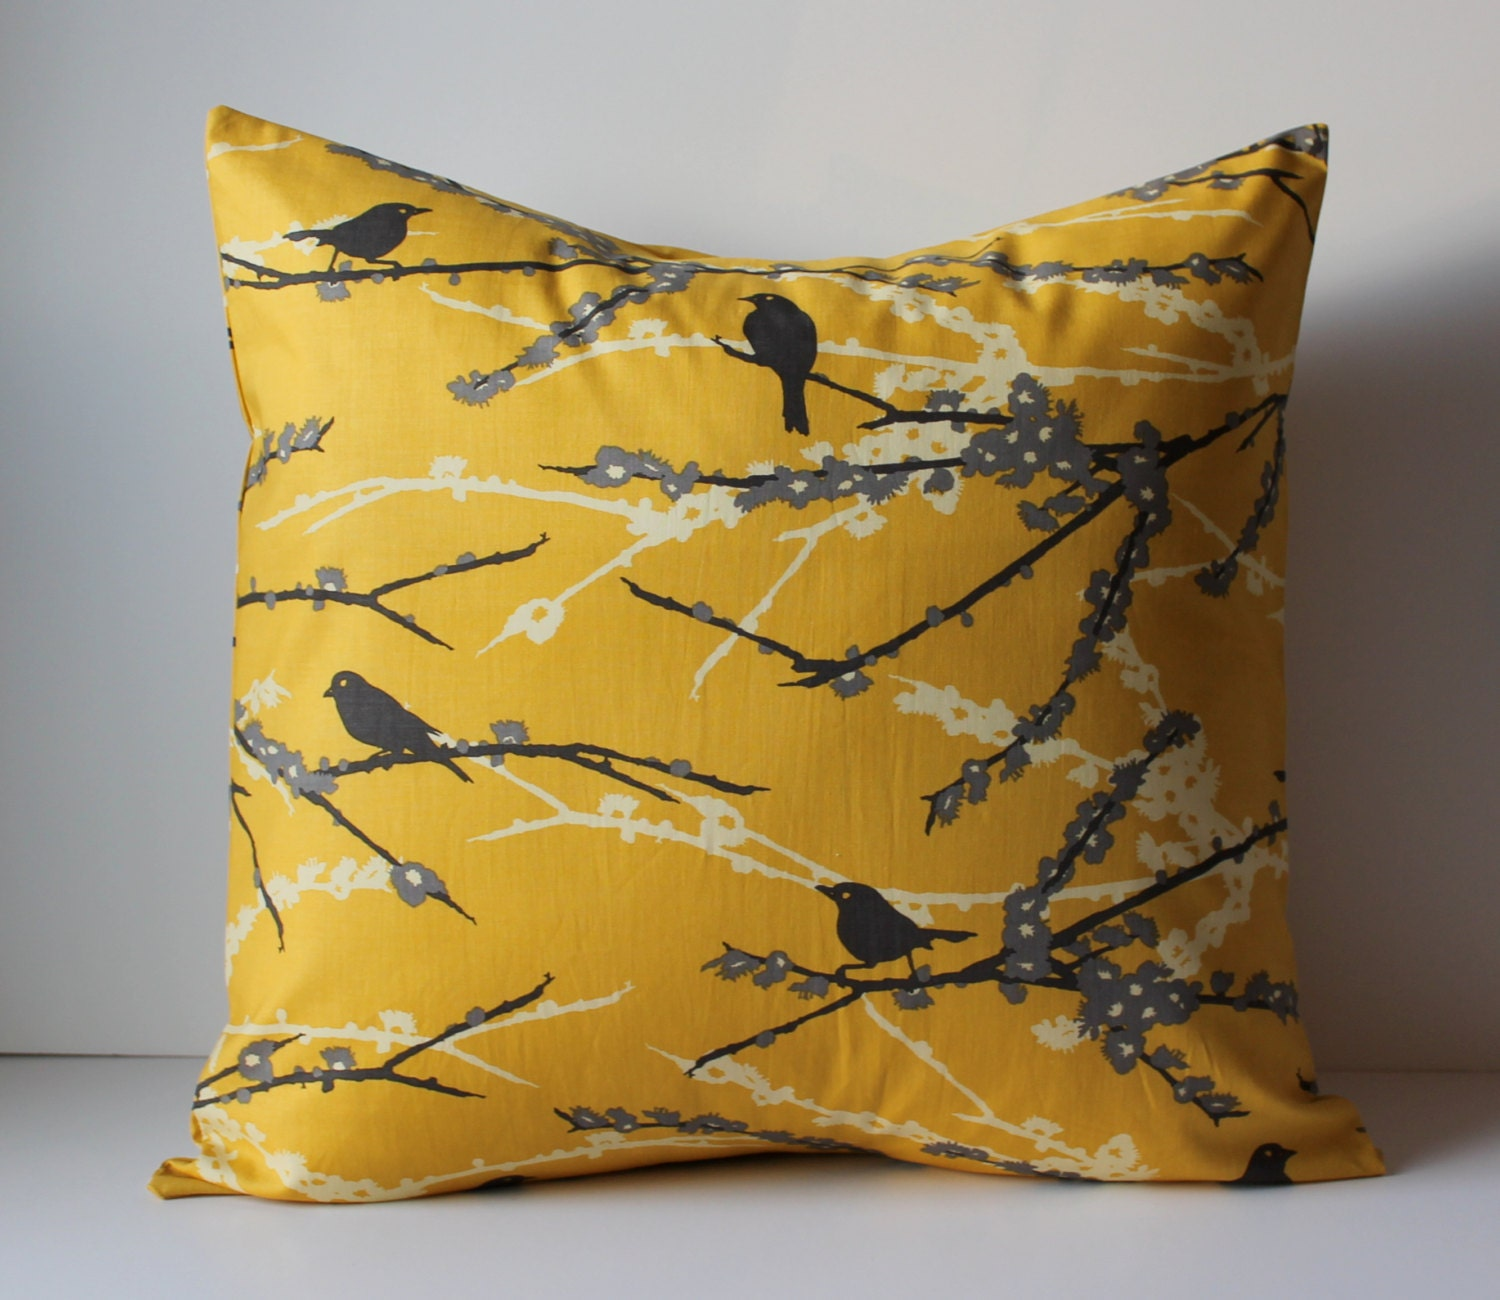 Decorative Pillows Etsy : Decorative Pillows Cushion Cover Mustard Yellow & by SewGracious